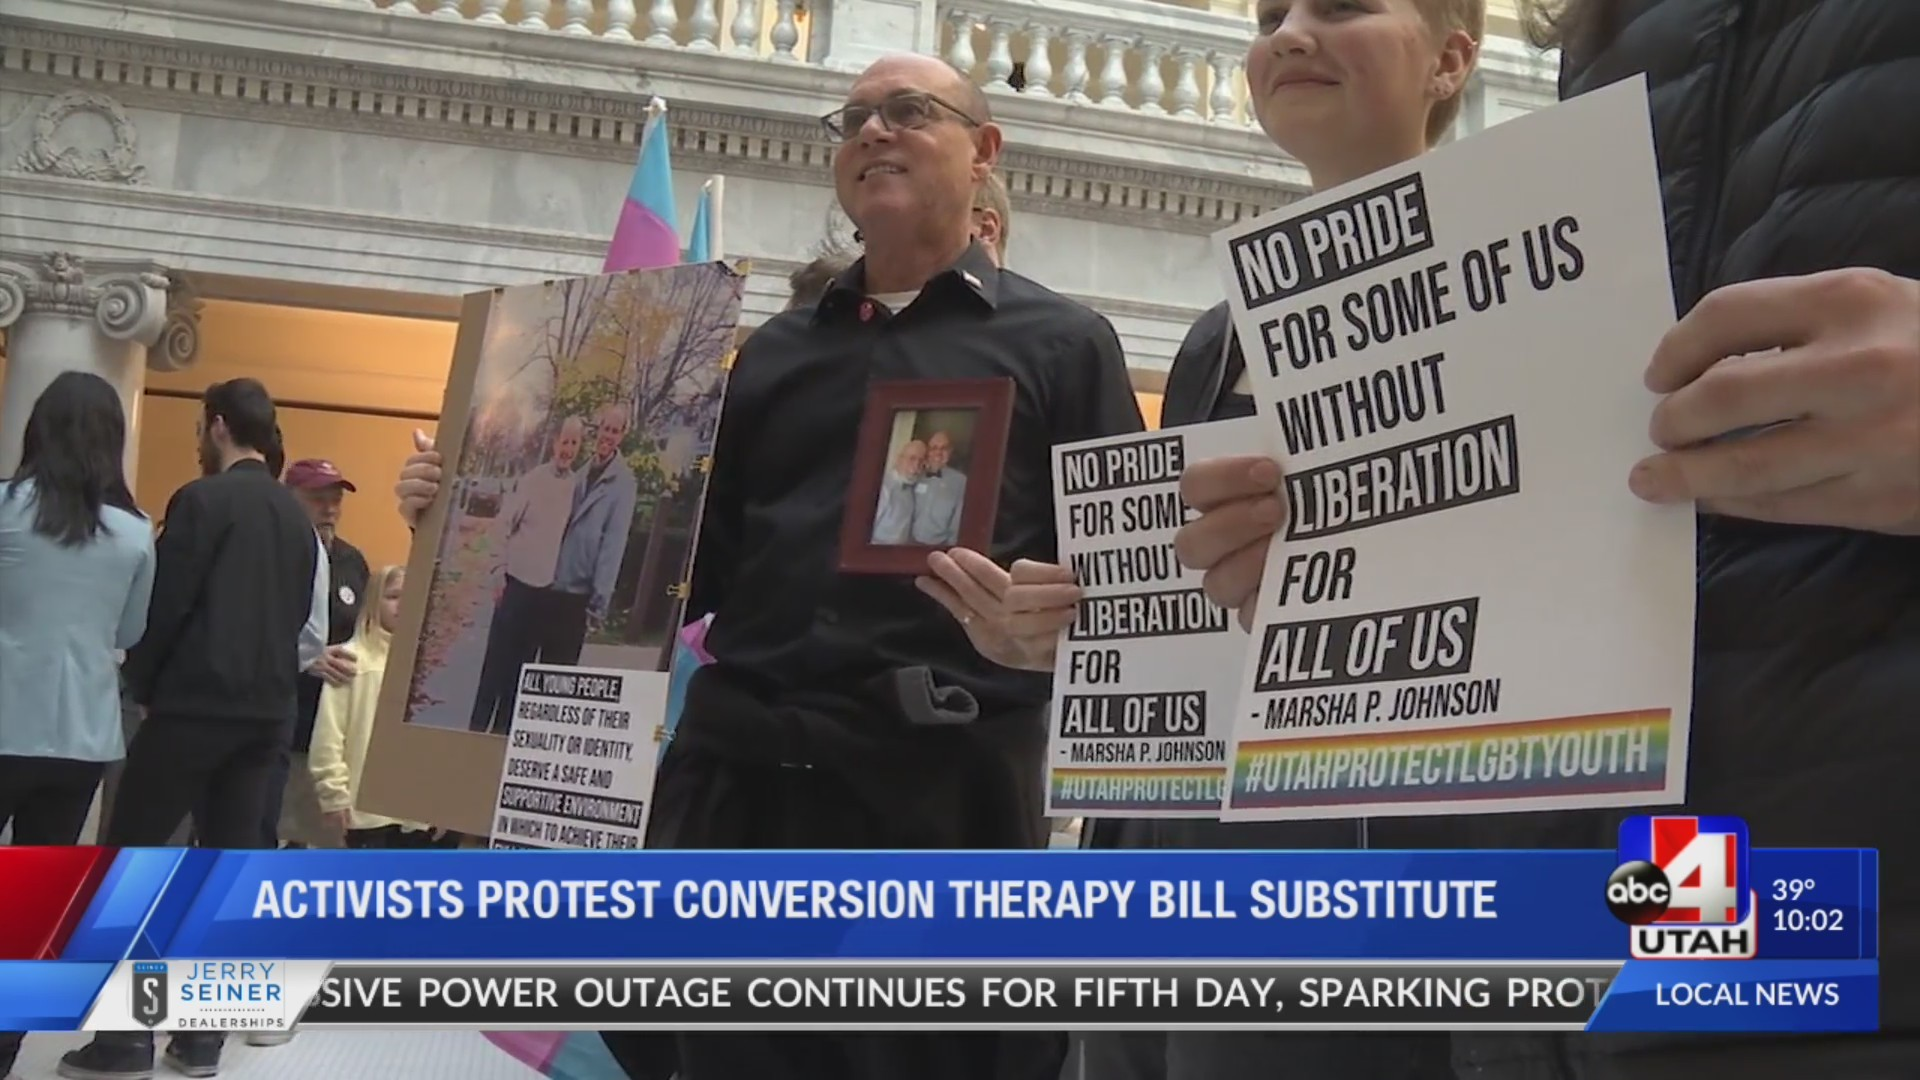 LGBTQ activists protest conversion therapy substitution bill